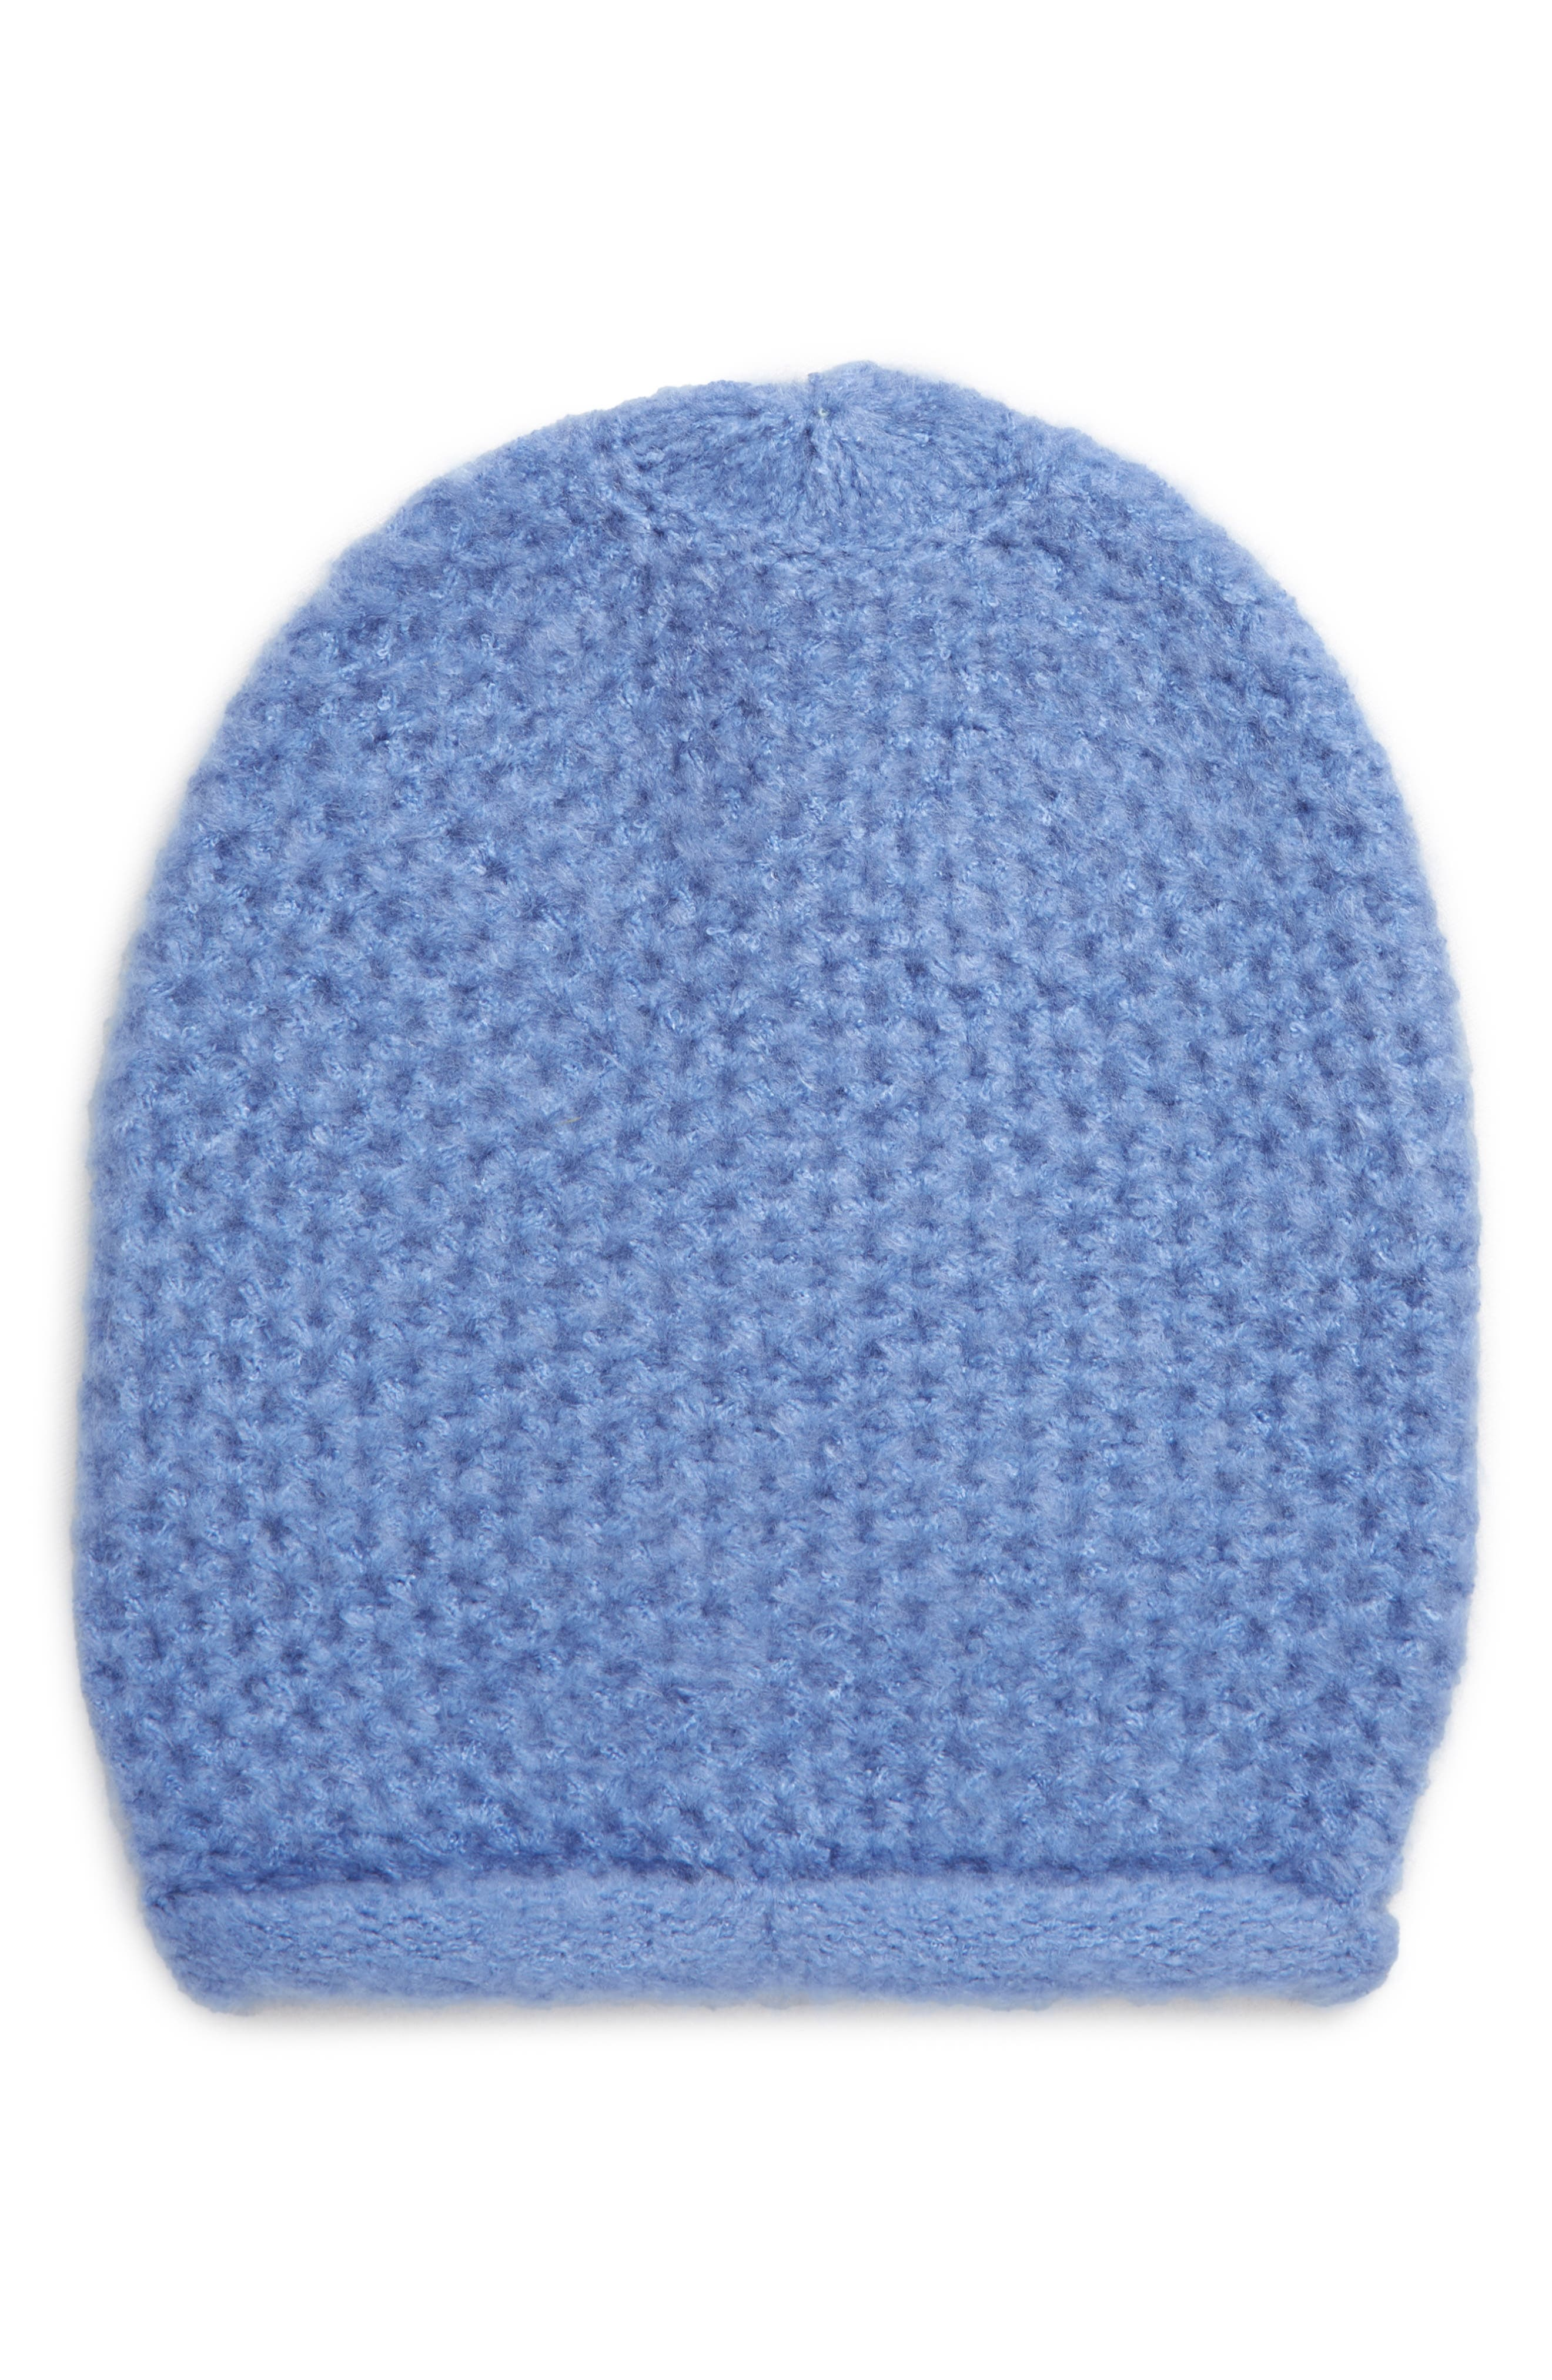 Image of Free People Dreamland Knit Beanie